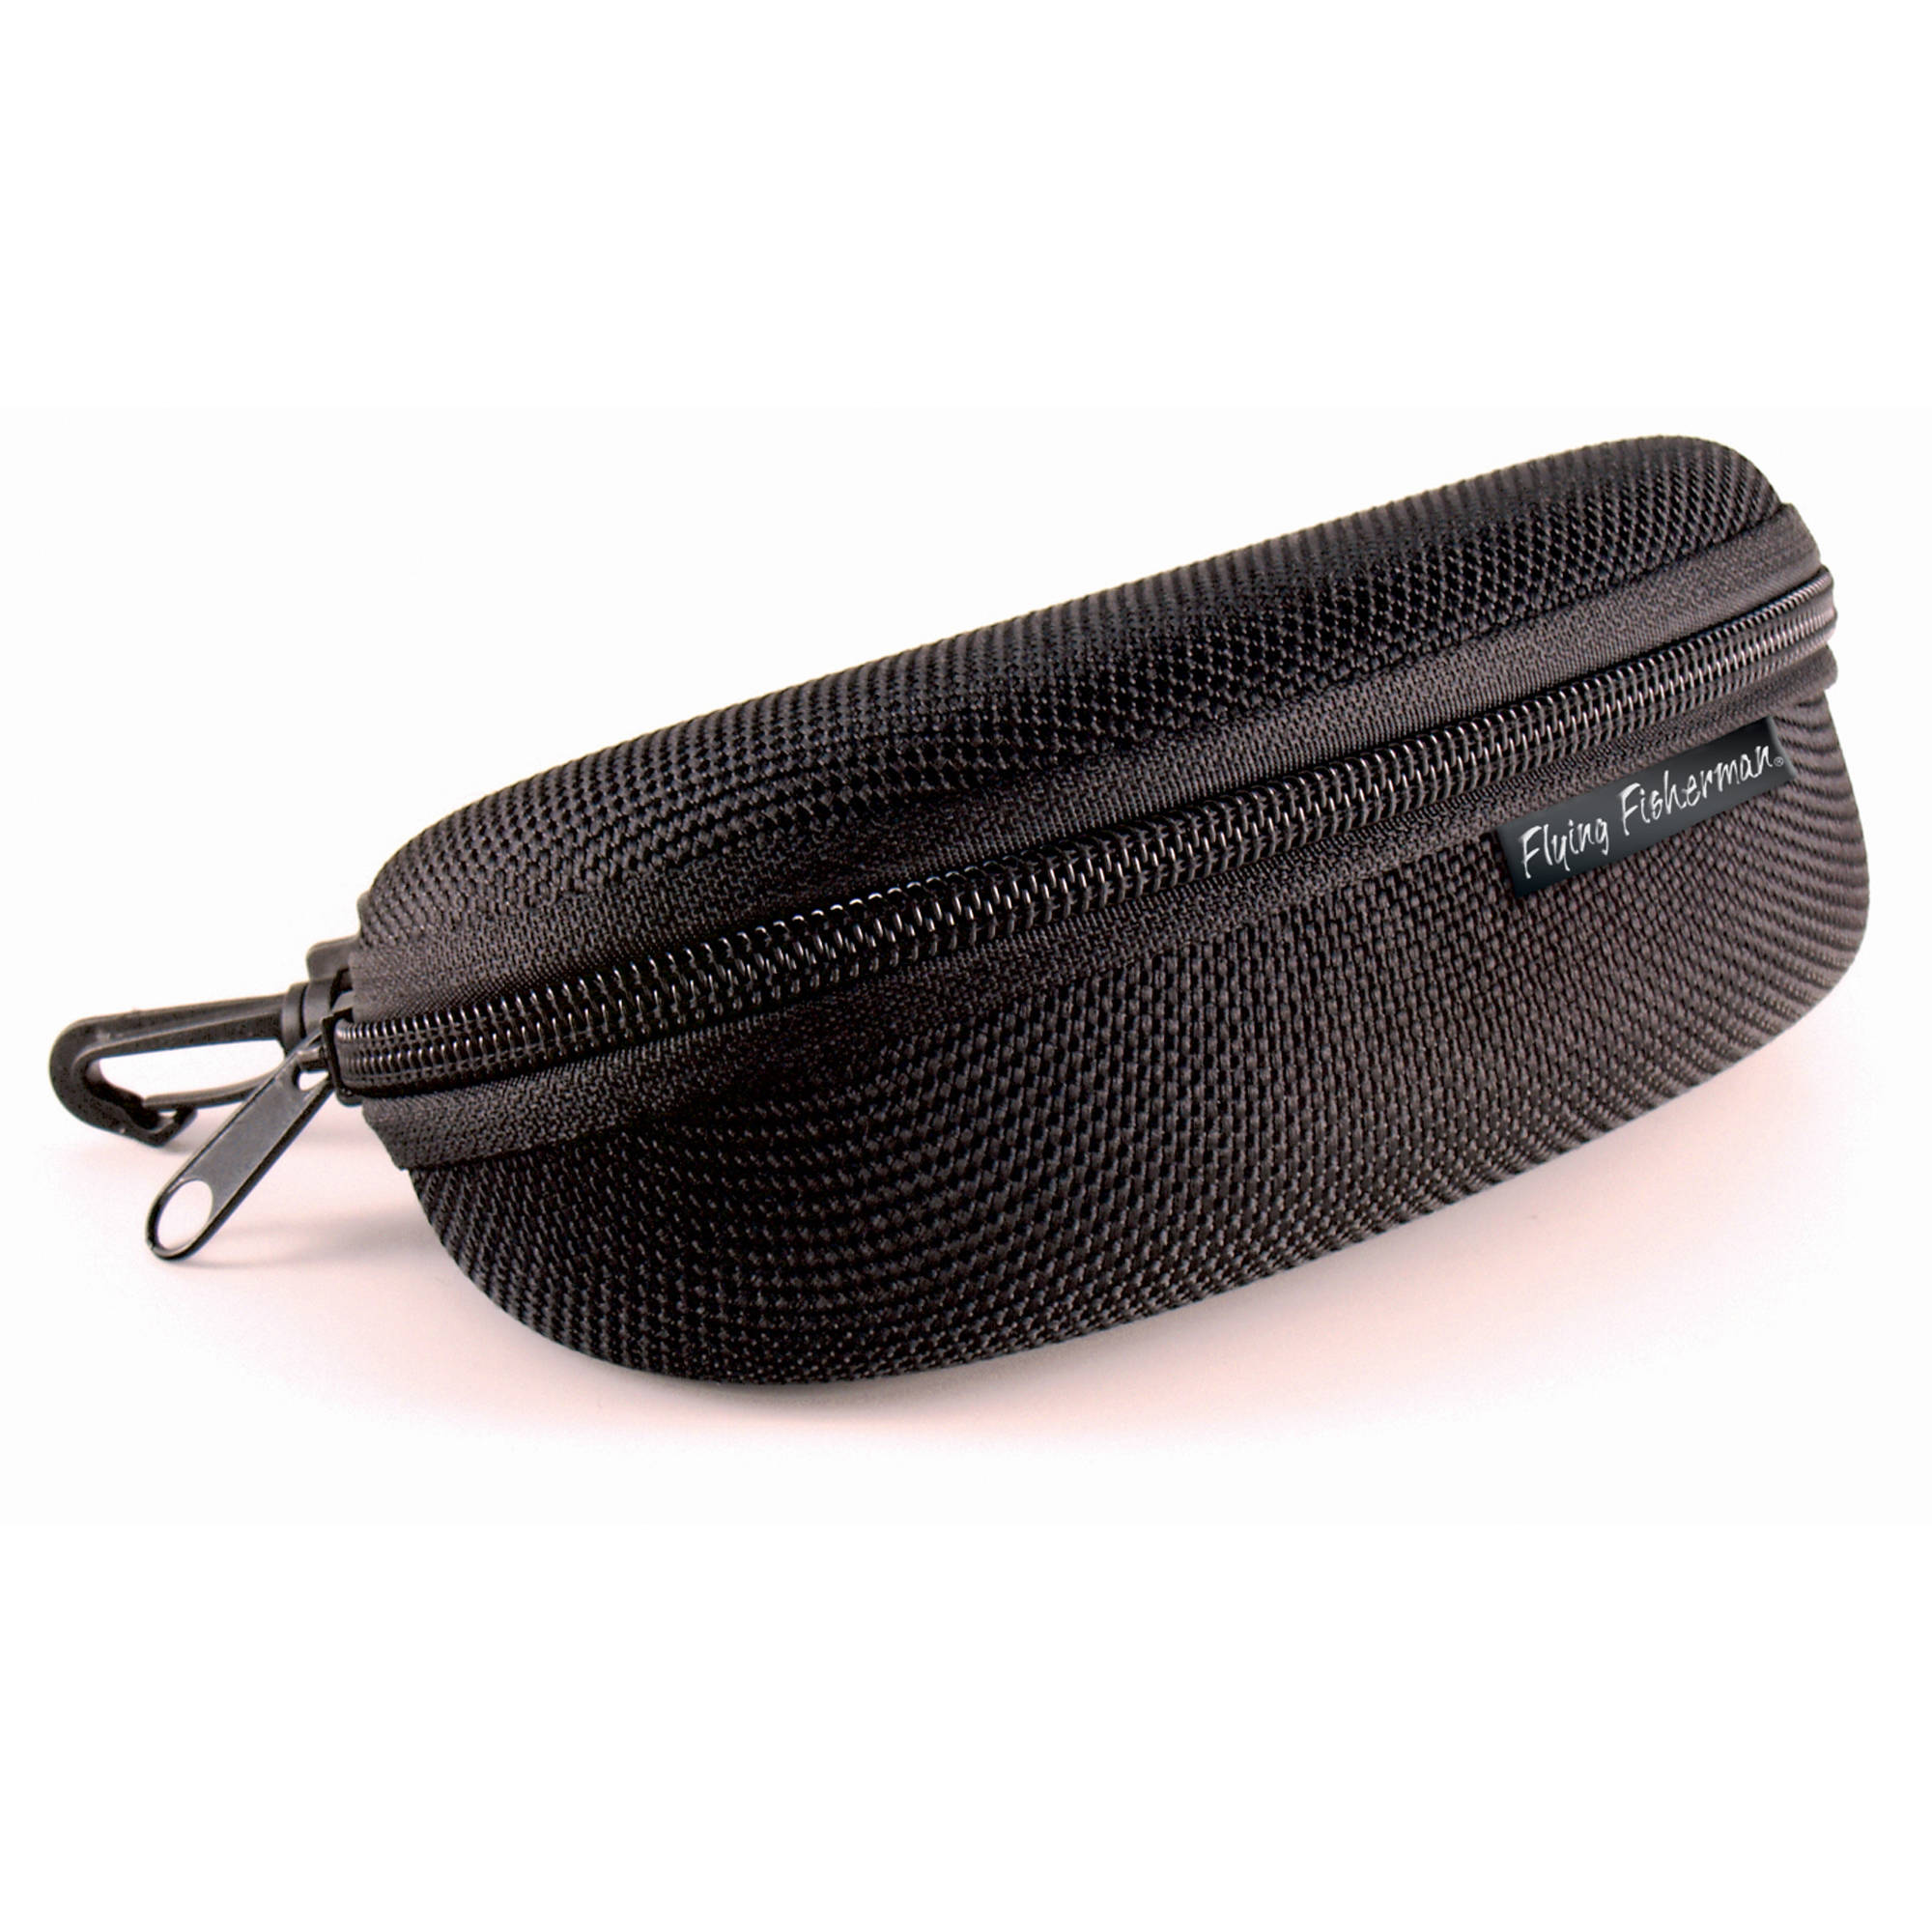 Flying Fisherman Sunglass Case, Zipper Shell With Clip Hook by Flying Fisherman